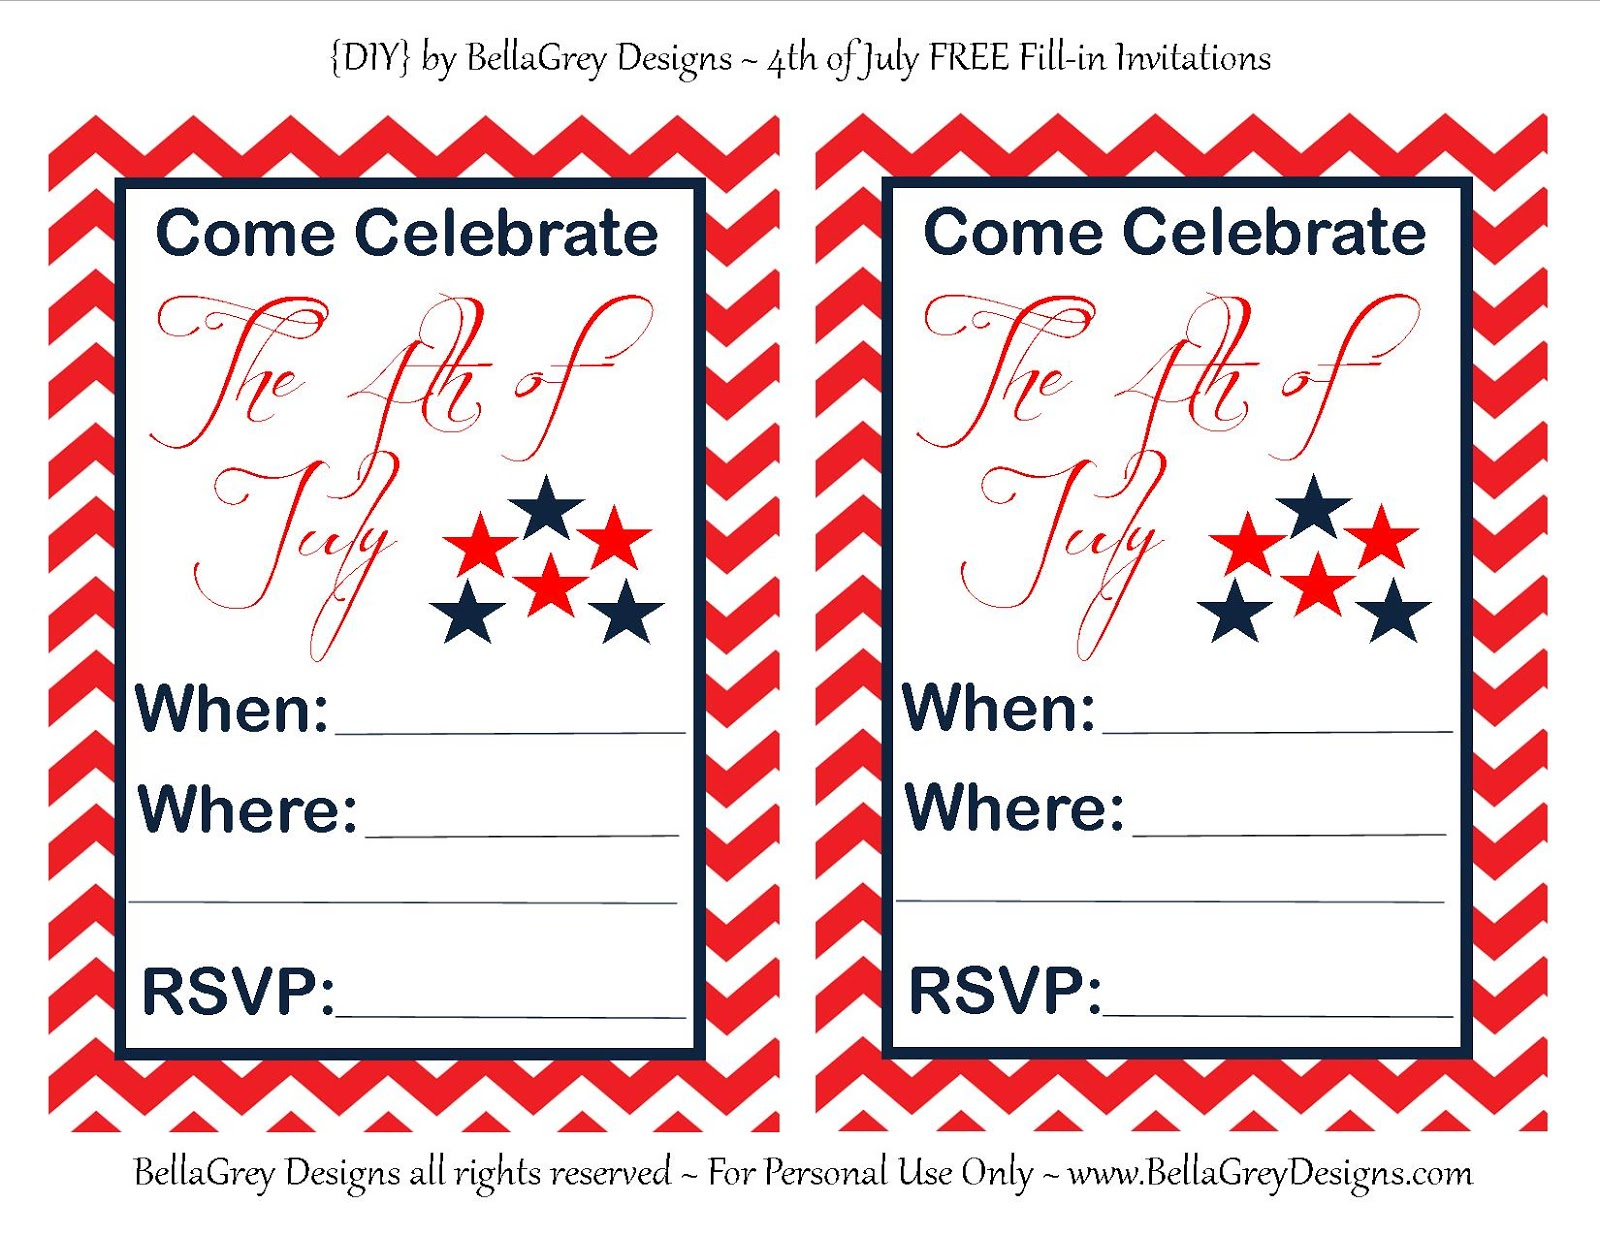 bellagrey designs 4th of july inspiration